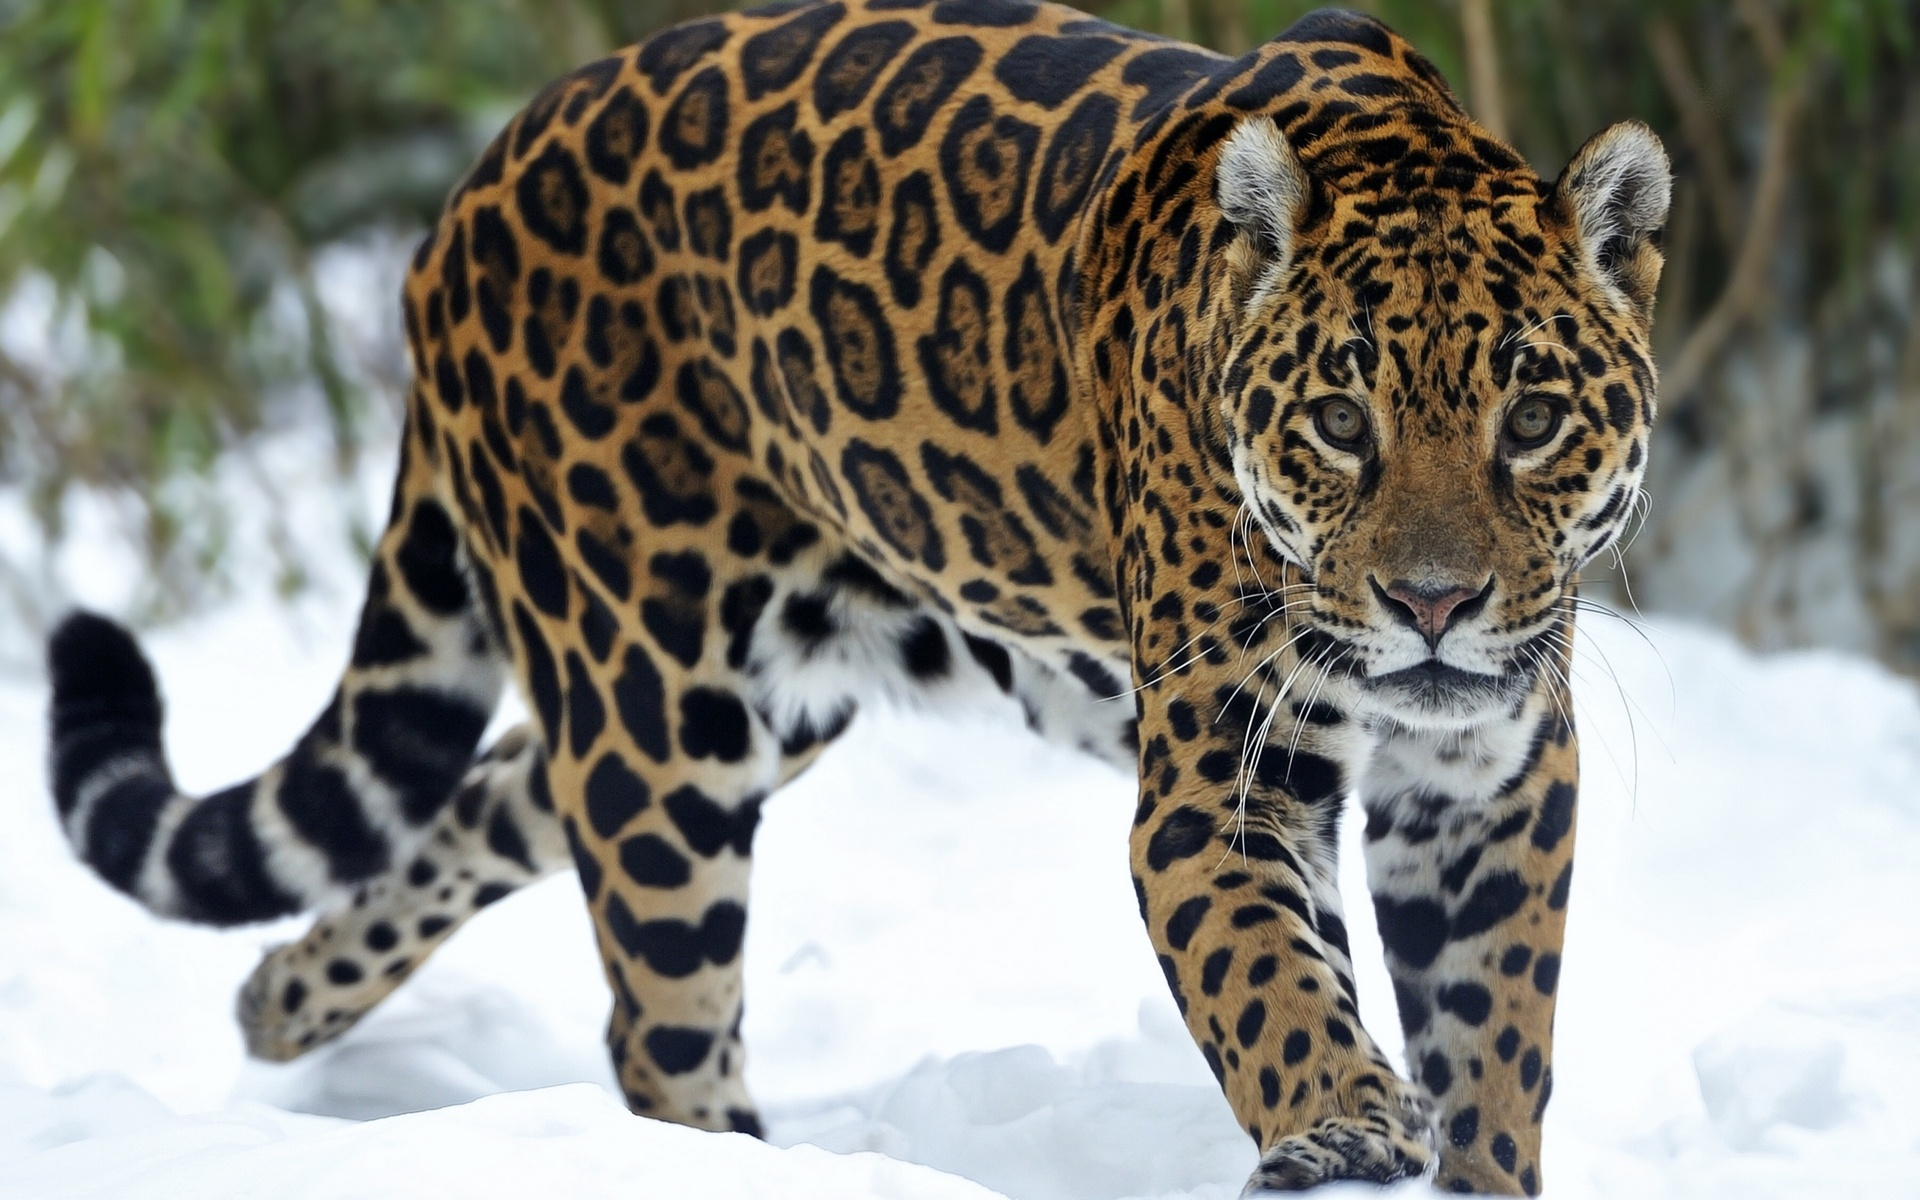 Jaguar predator snow eyes cat wallpaper 1920x1200 65616 1920x1200